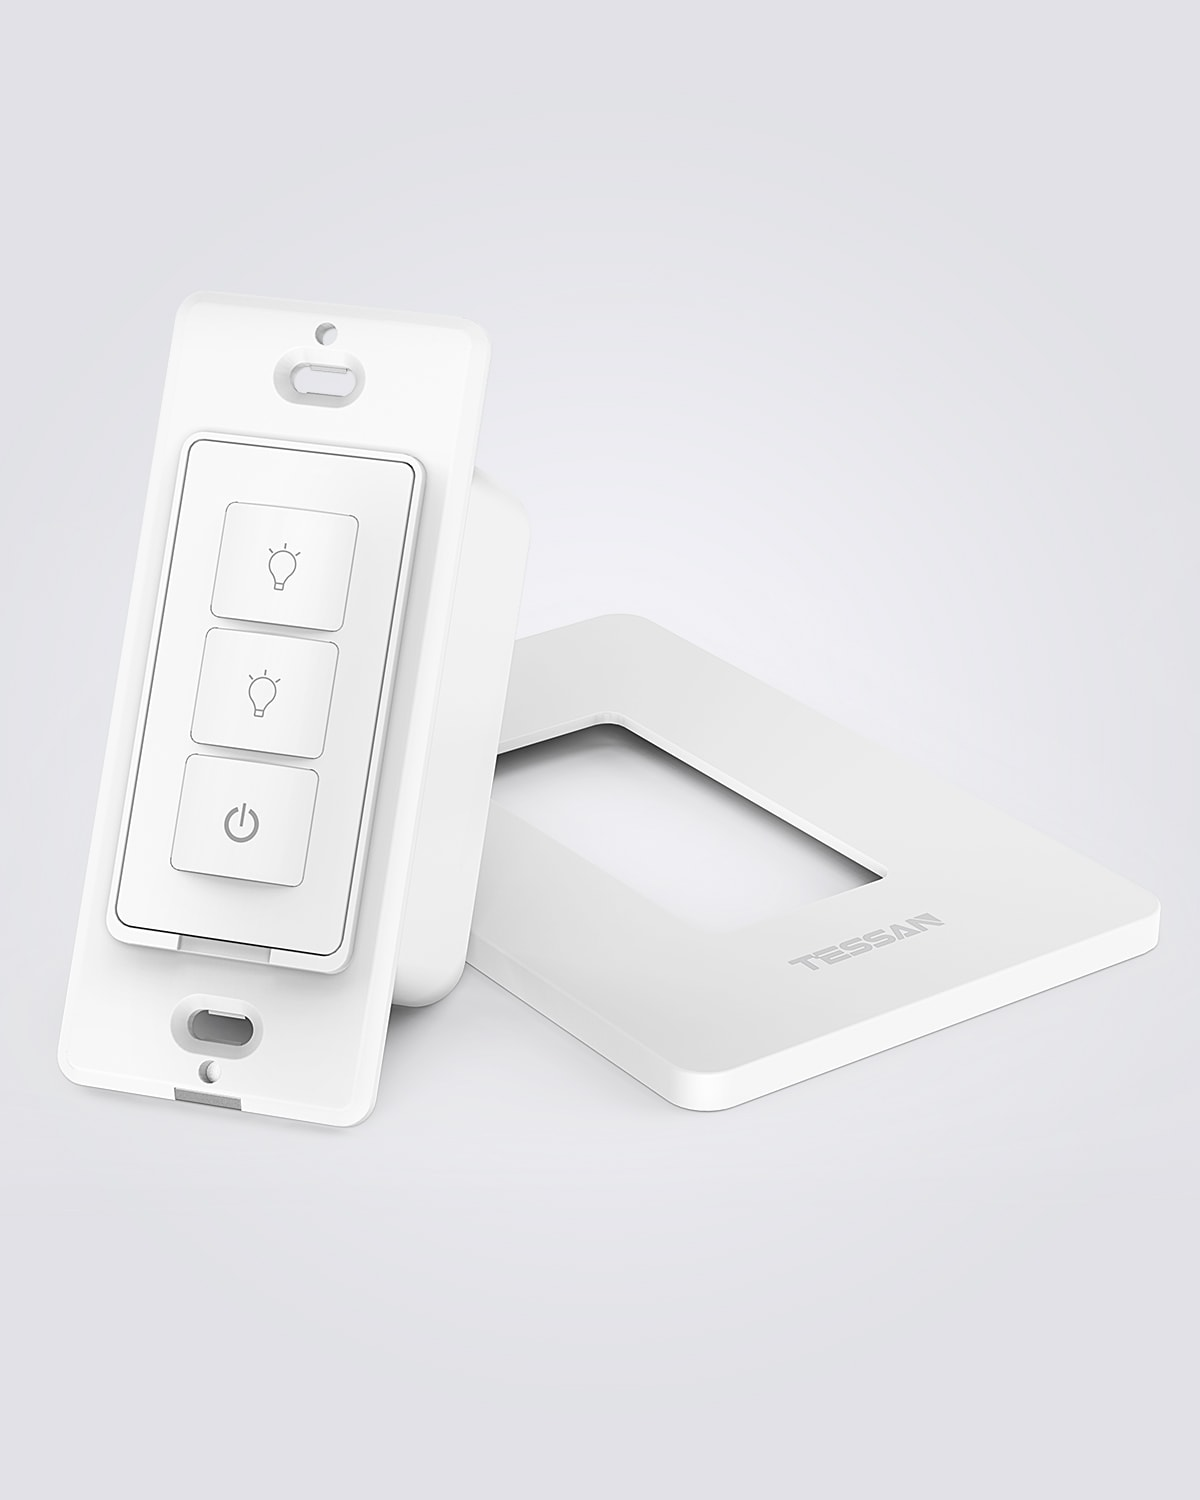 Extra Add-on Switch for Tessan 3 Way Smart Dimmer Switch Kit, Cannot works Independently